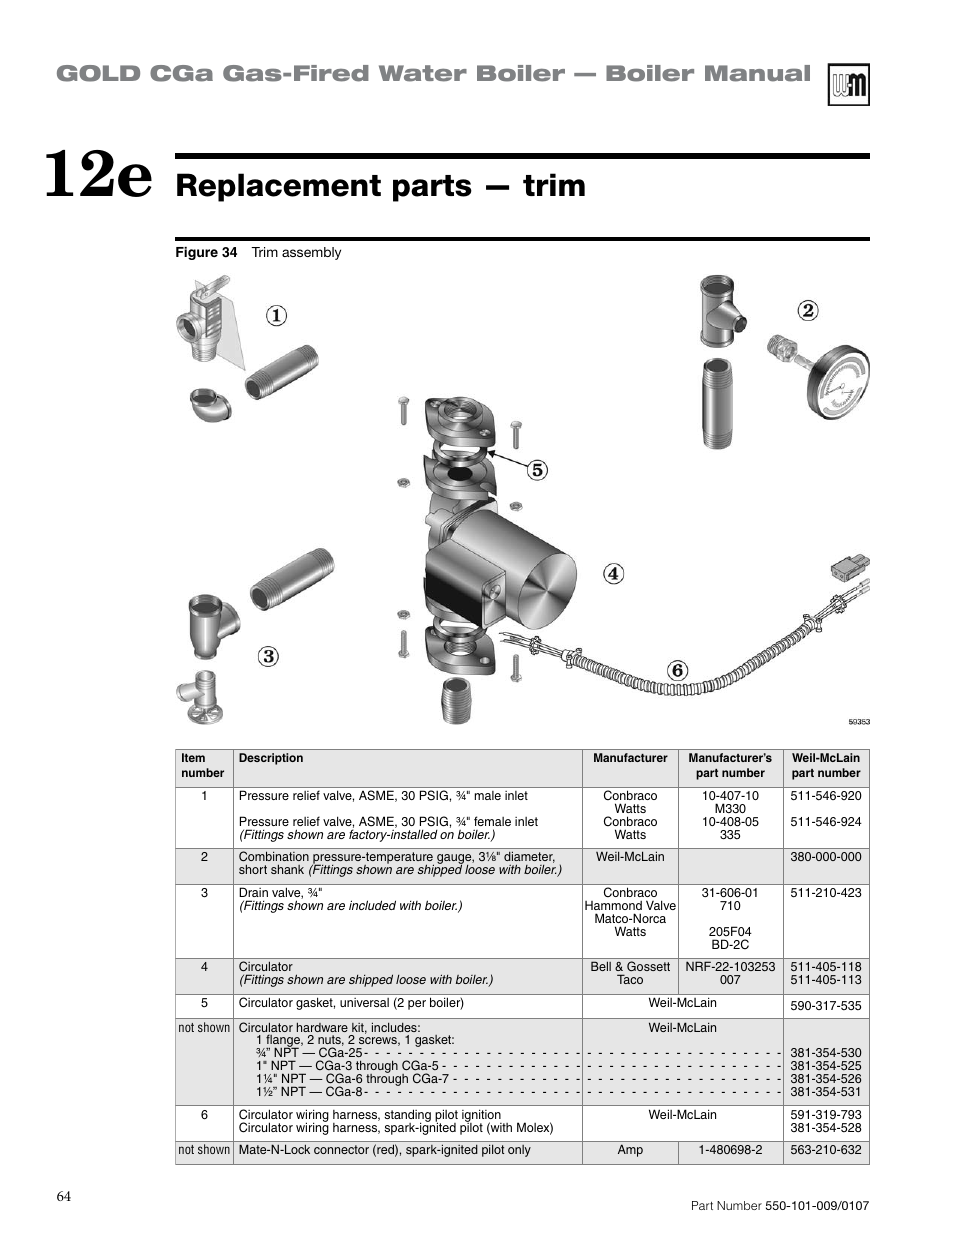 Replacement parts — trim, Gold cga gas-fired water boiler — boiler ...